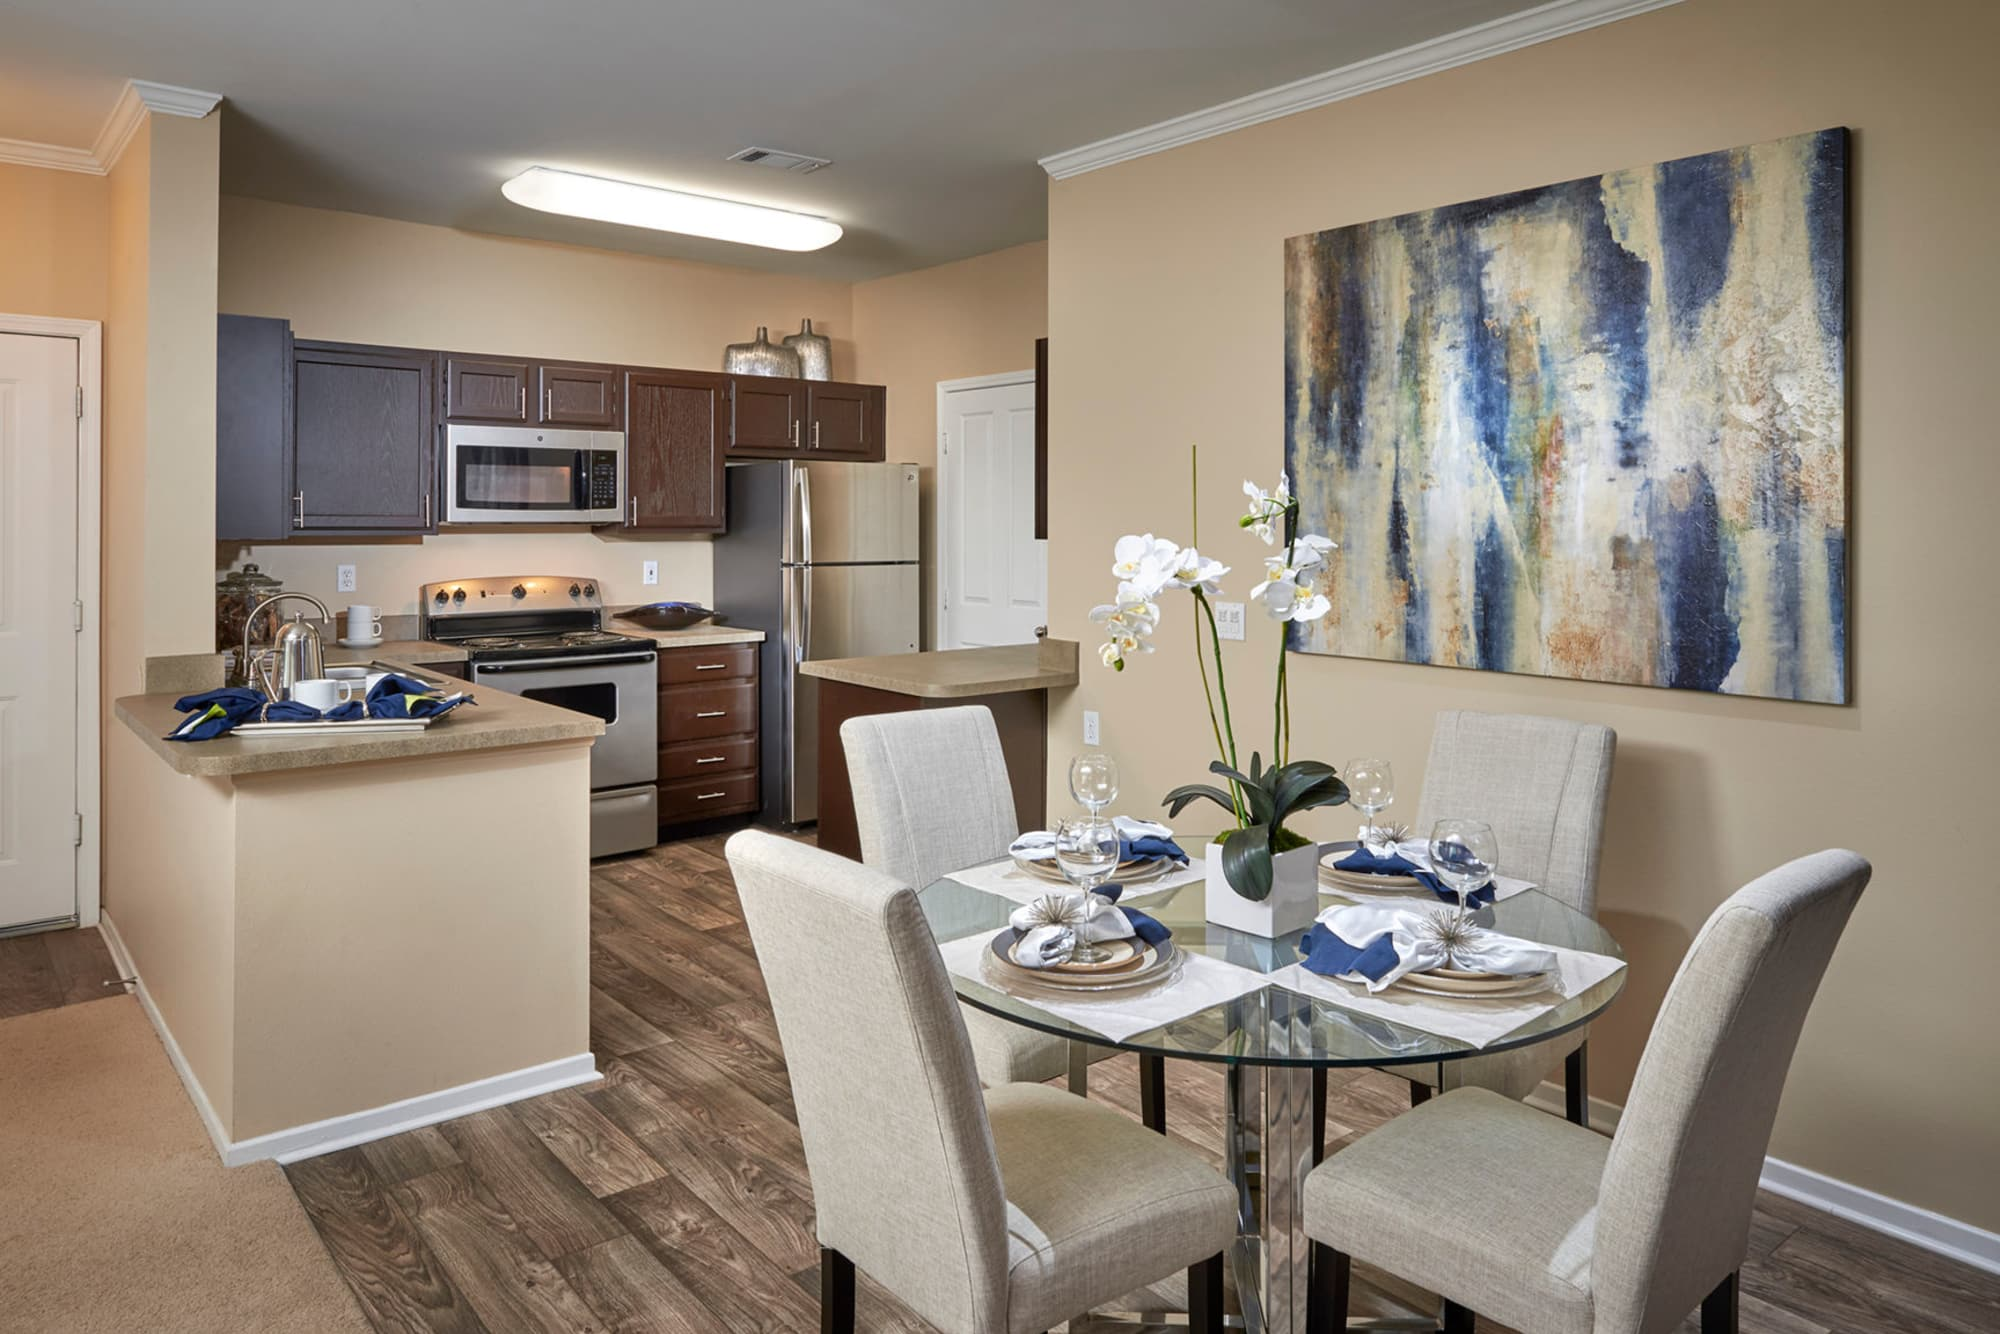 Kitchen and dining room at Legend Oaks Apartments